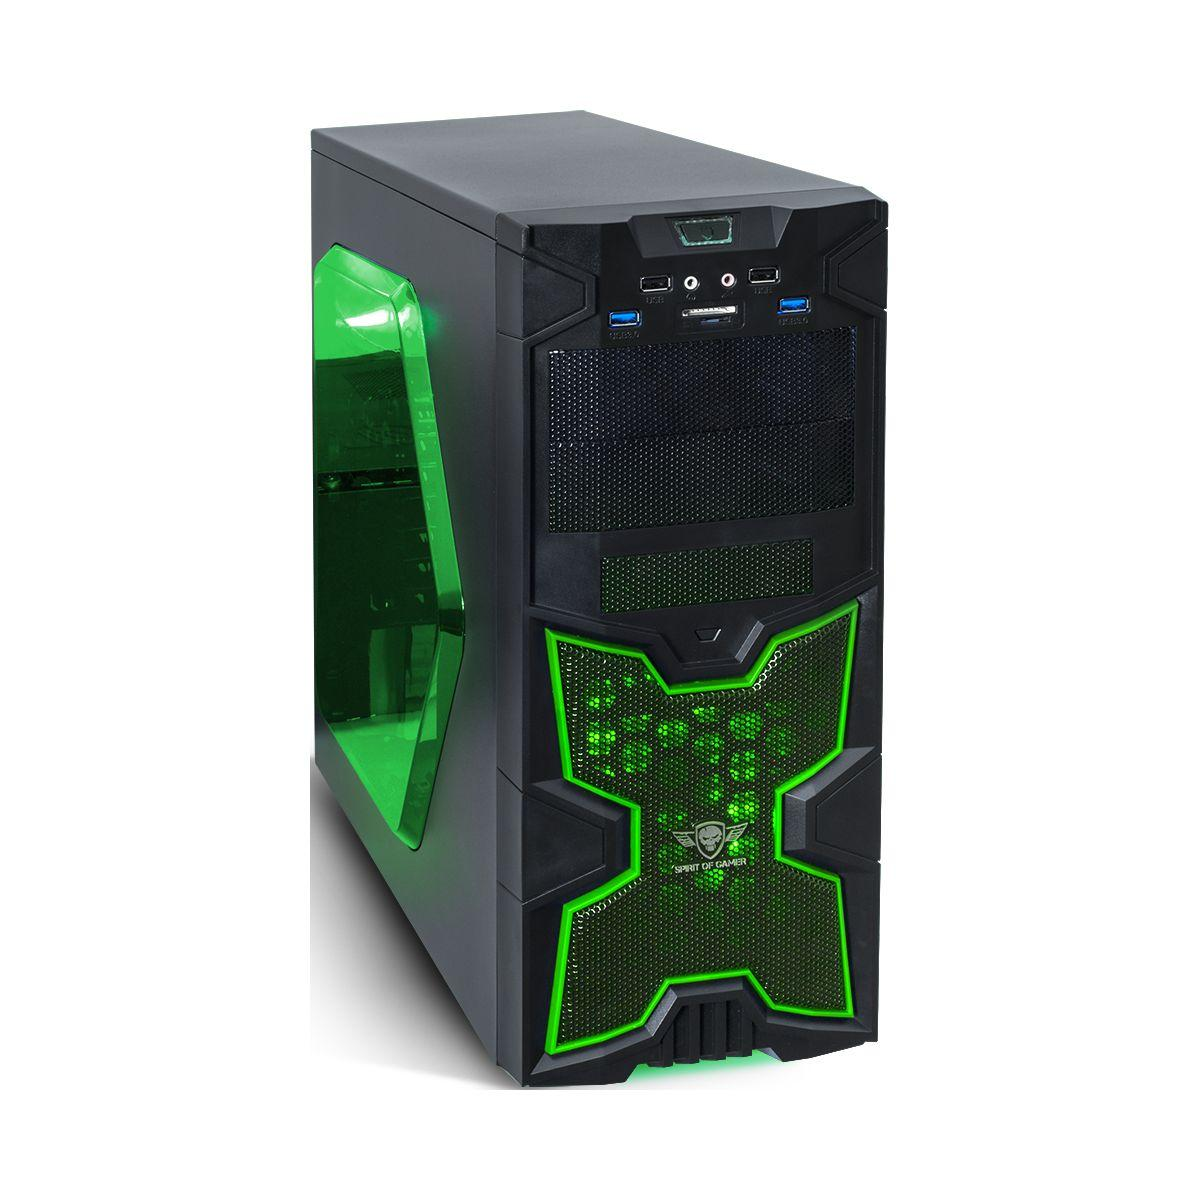 Boitier pc spirit of gamer x-fighters 41 green army - 2% de remise imm�diate avec le code : fete2 (photo)